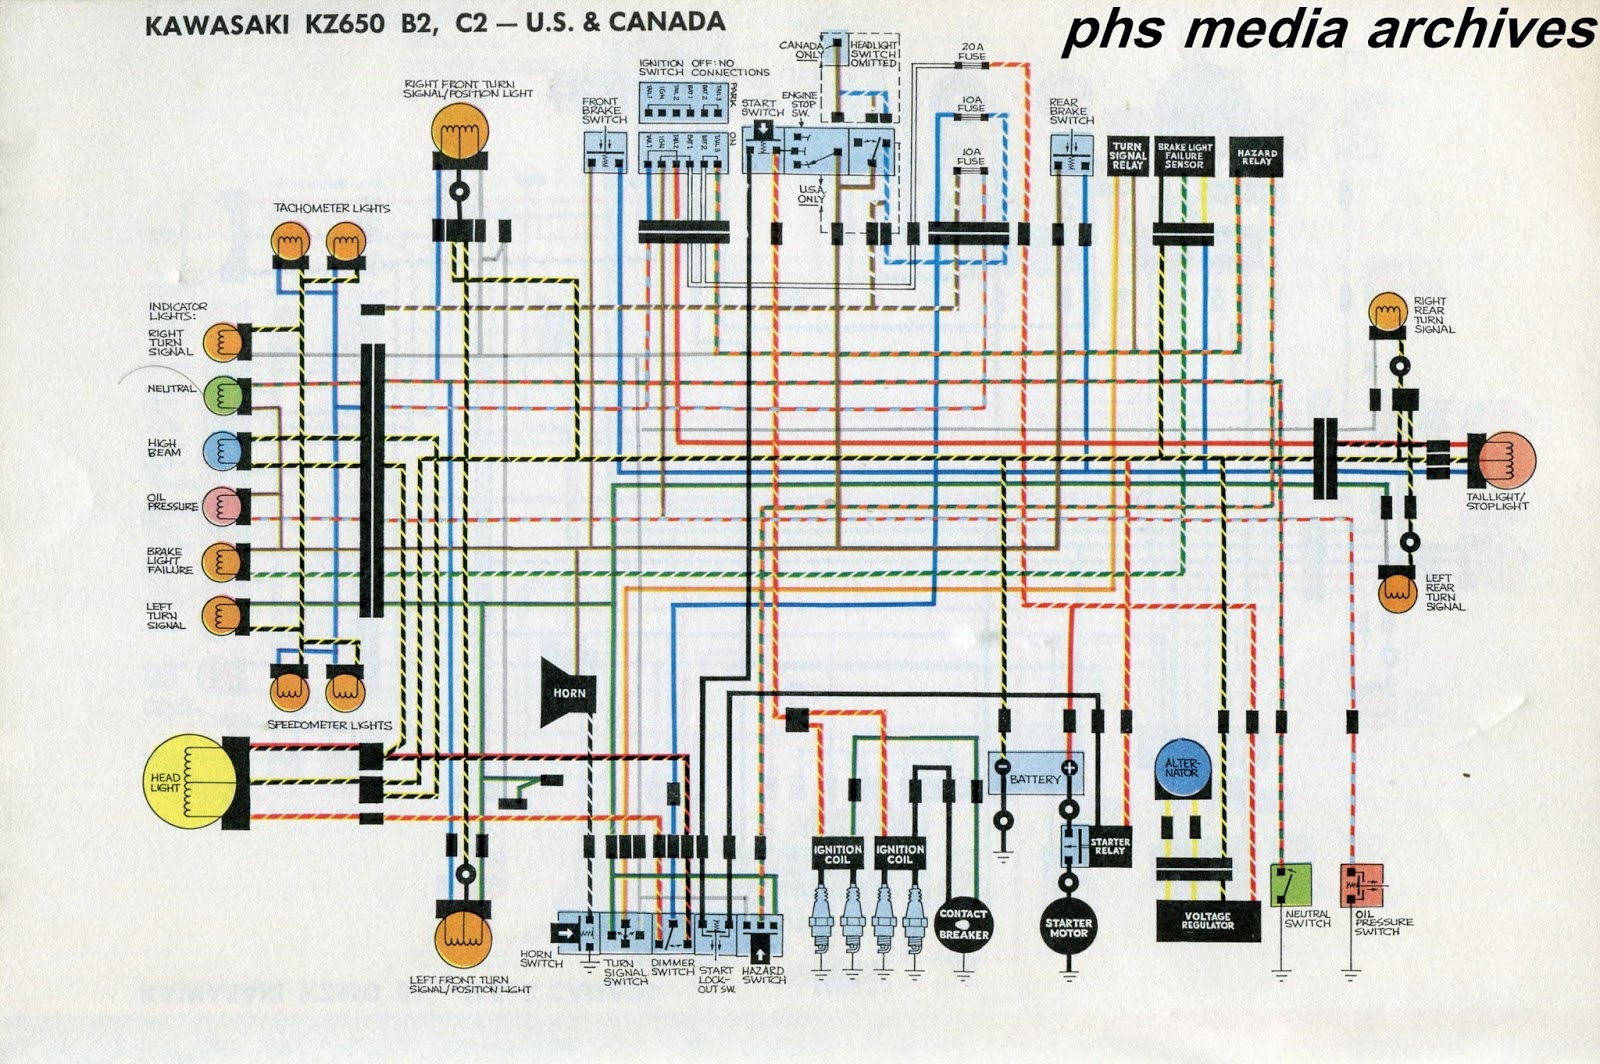 medium resolution of the above chart covers the north american b1 bikes for united states and canada a nice feature here is the wires and elements are in color for easier